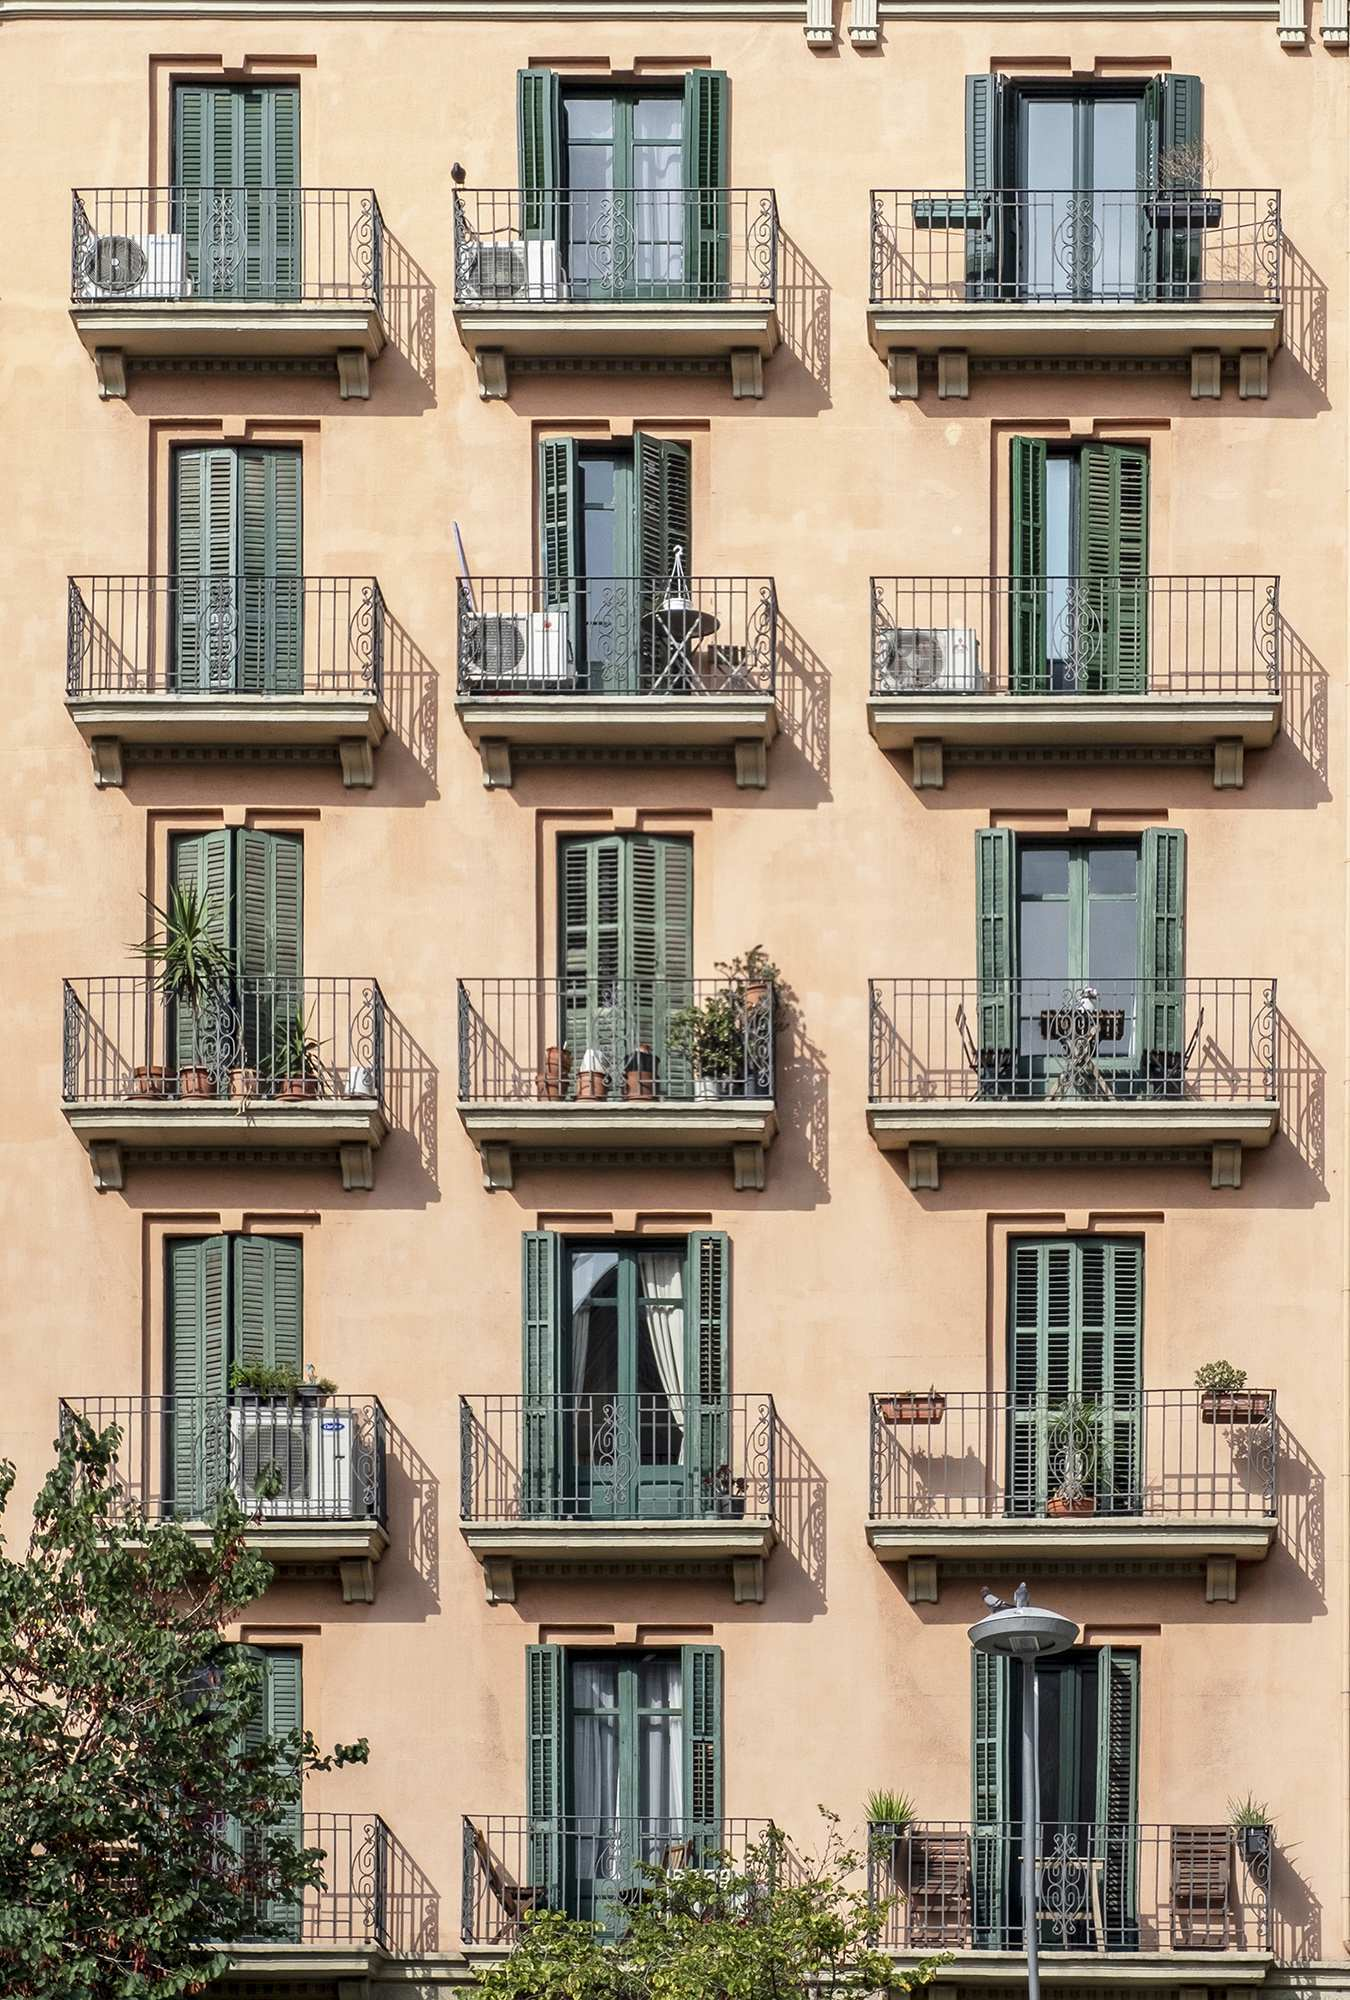 Barcelona typical facades - @msubirats